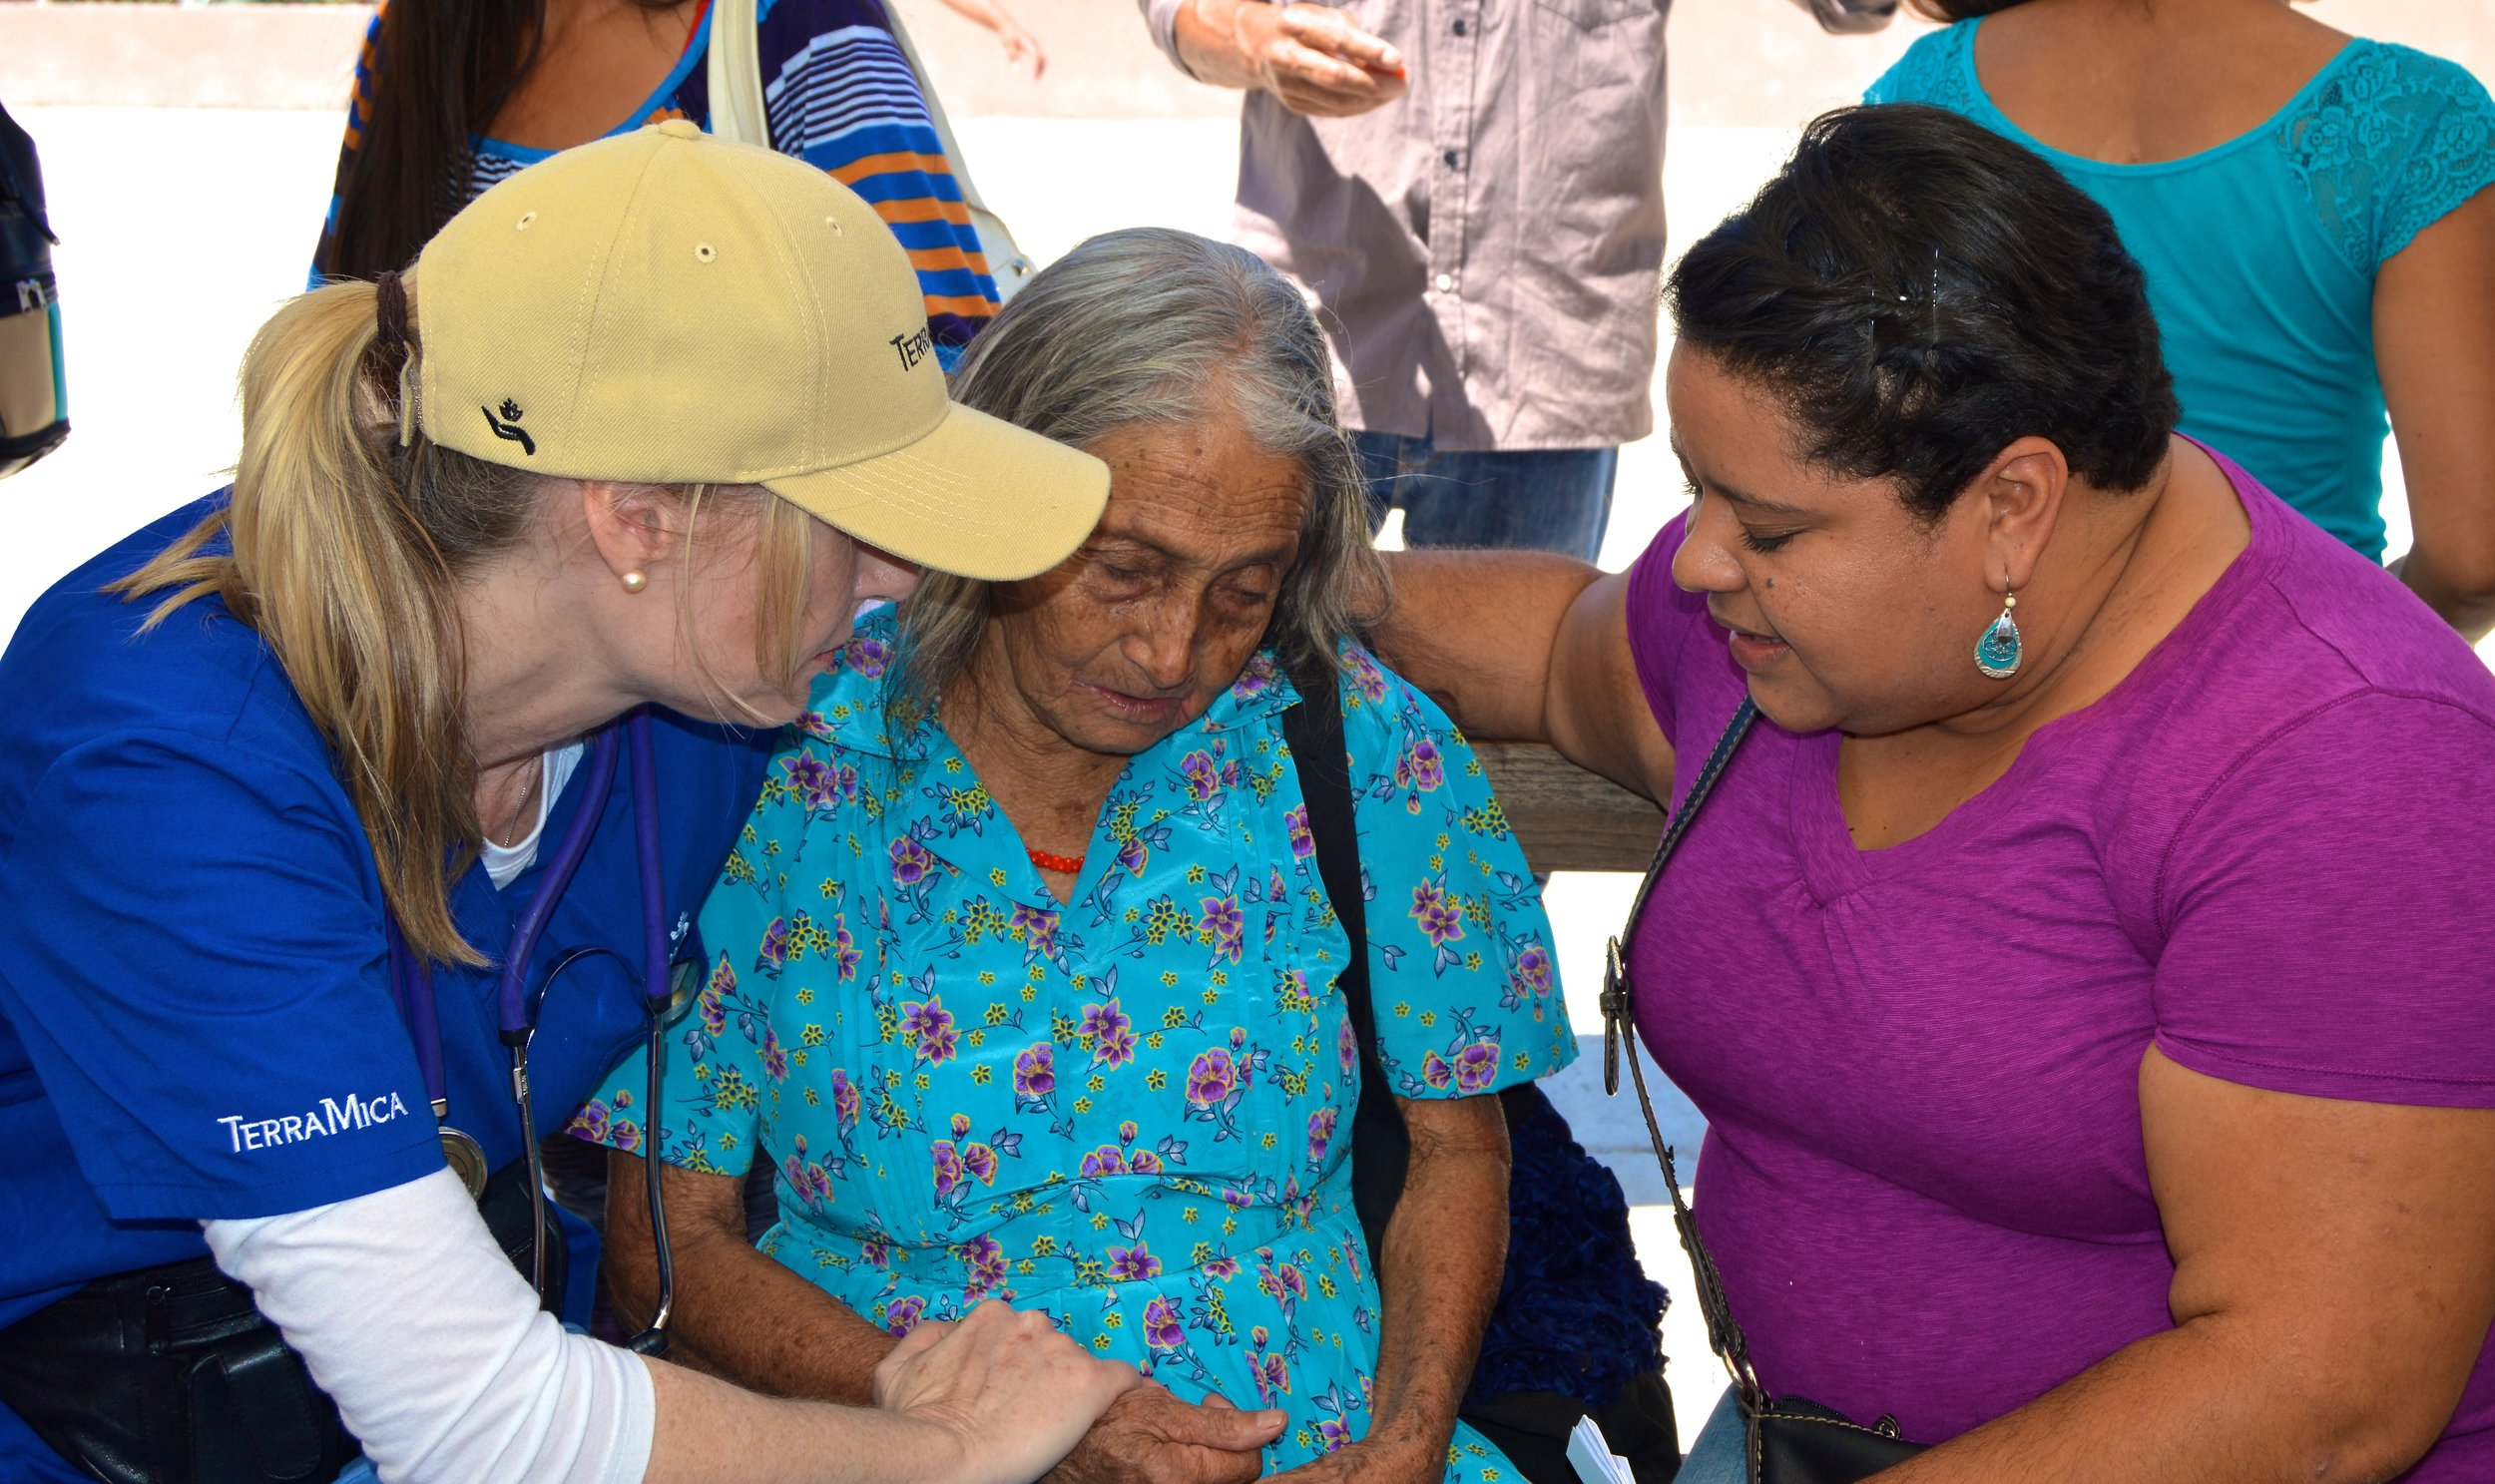 praying-together-lynette-becky-and-woman.jpg